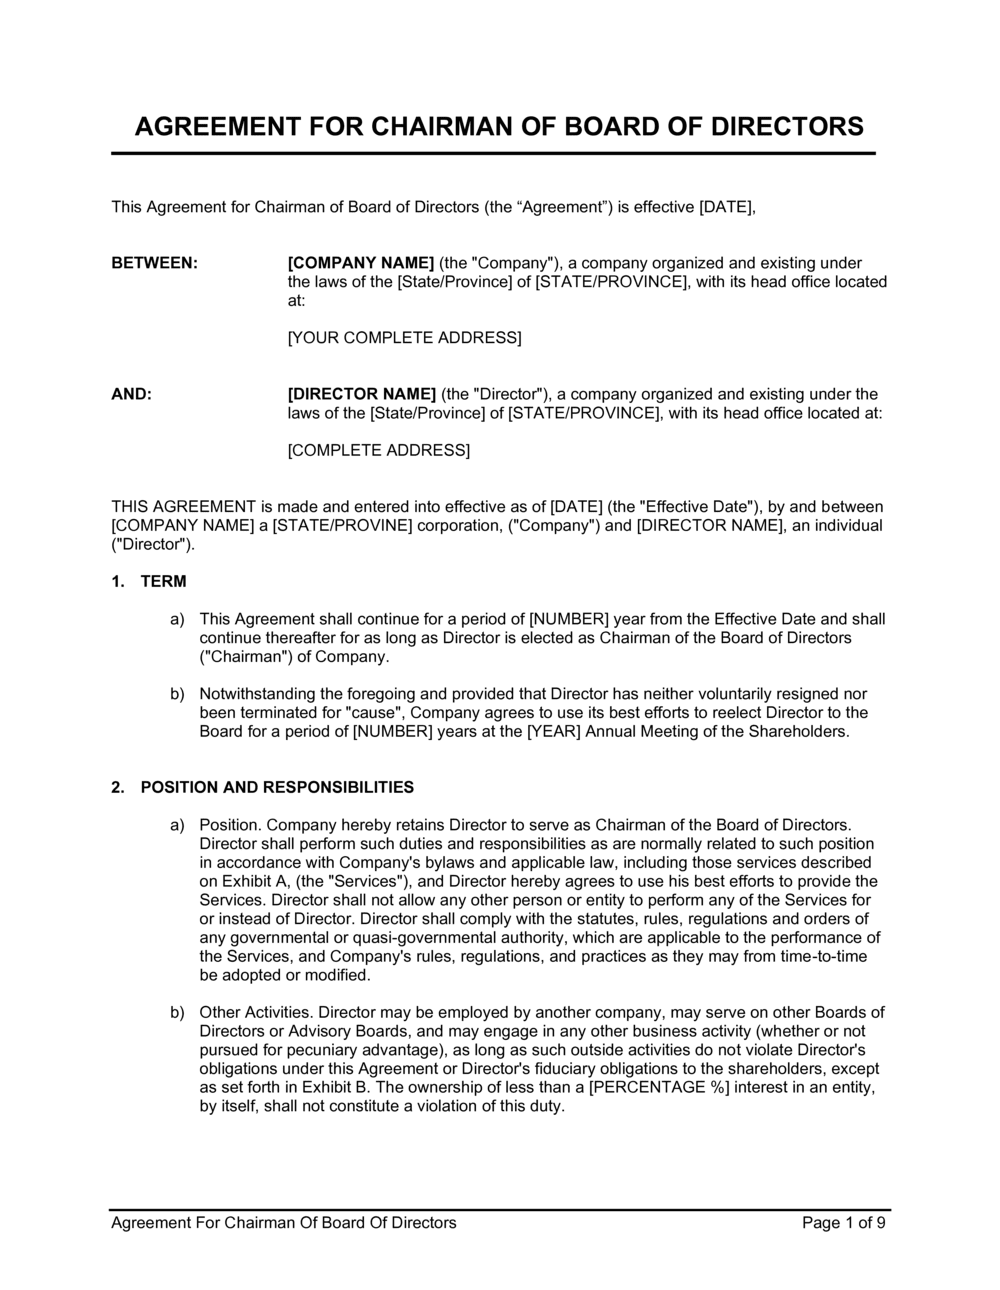 Business-in-a-Box's Agreement for Chairman of Board of Directors Template